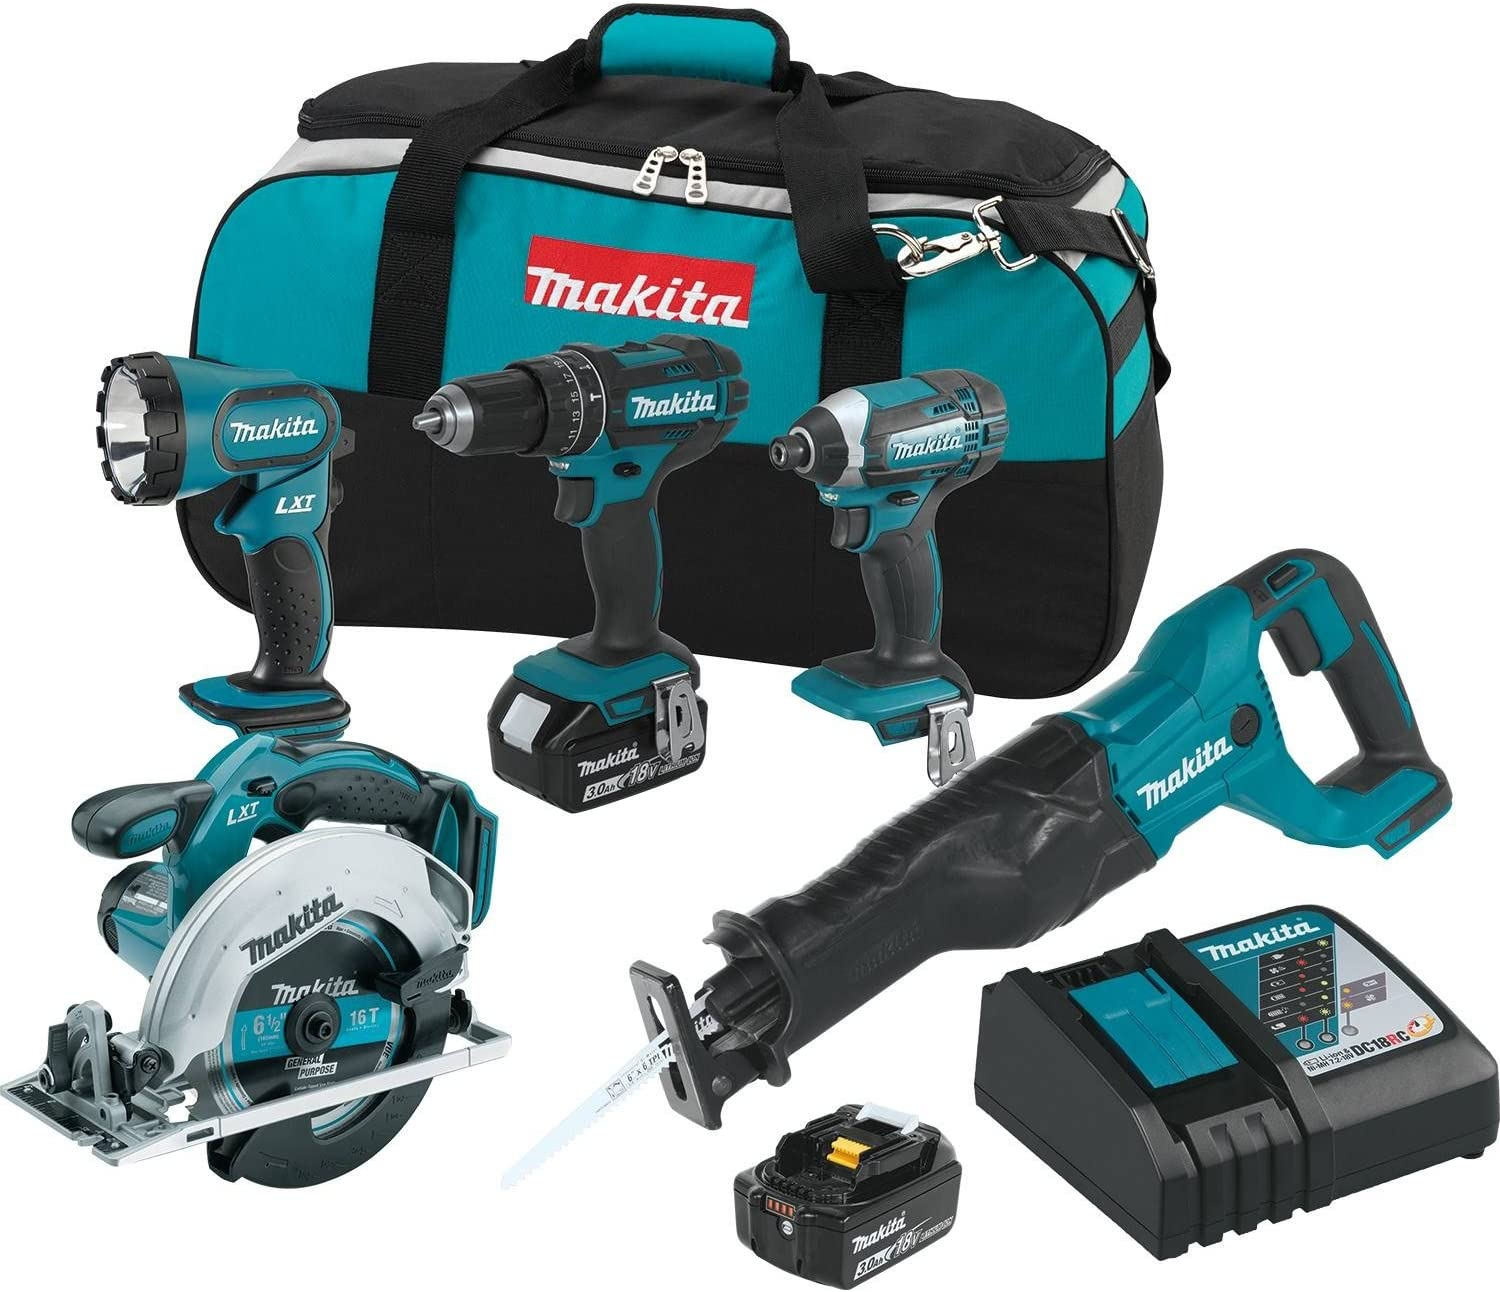 Makita XT505 18V LXT Lithium-Ion Cordless 5-Pc. Combo Kit 3.0Ah